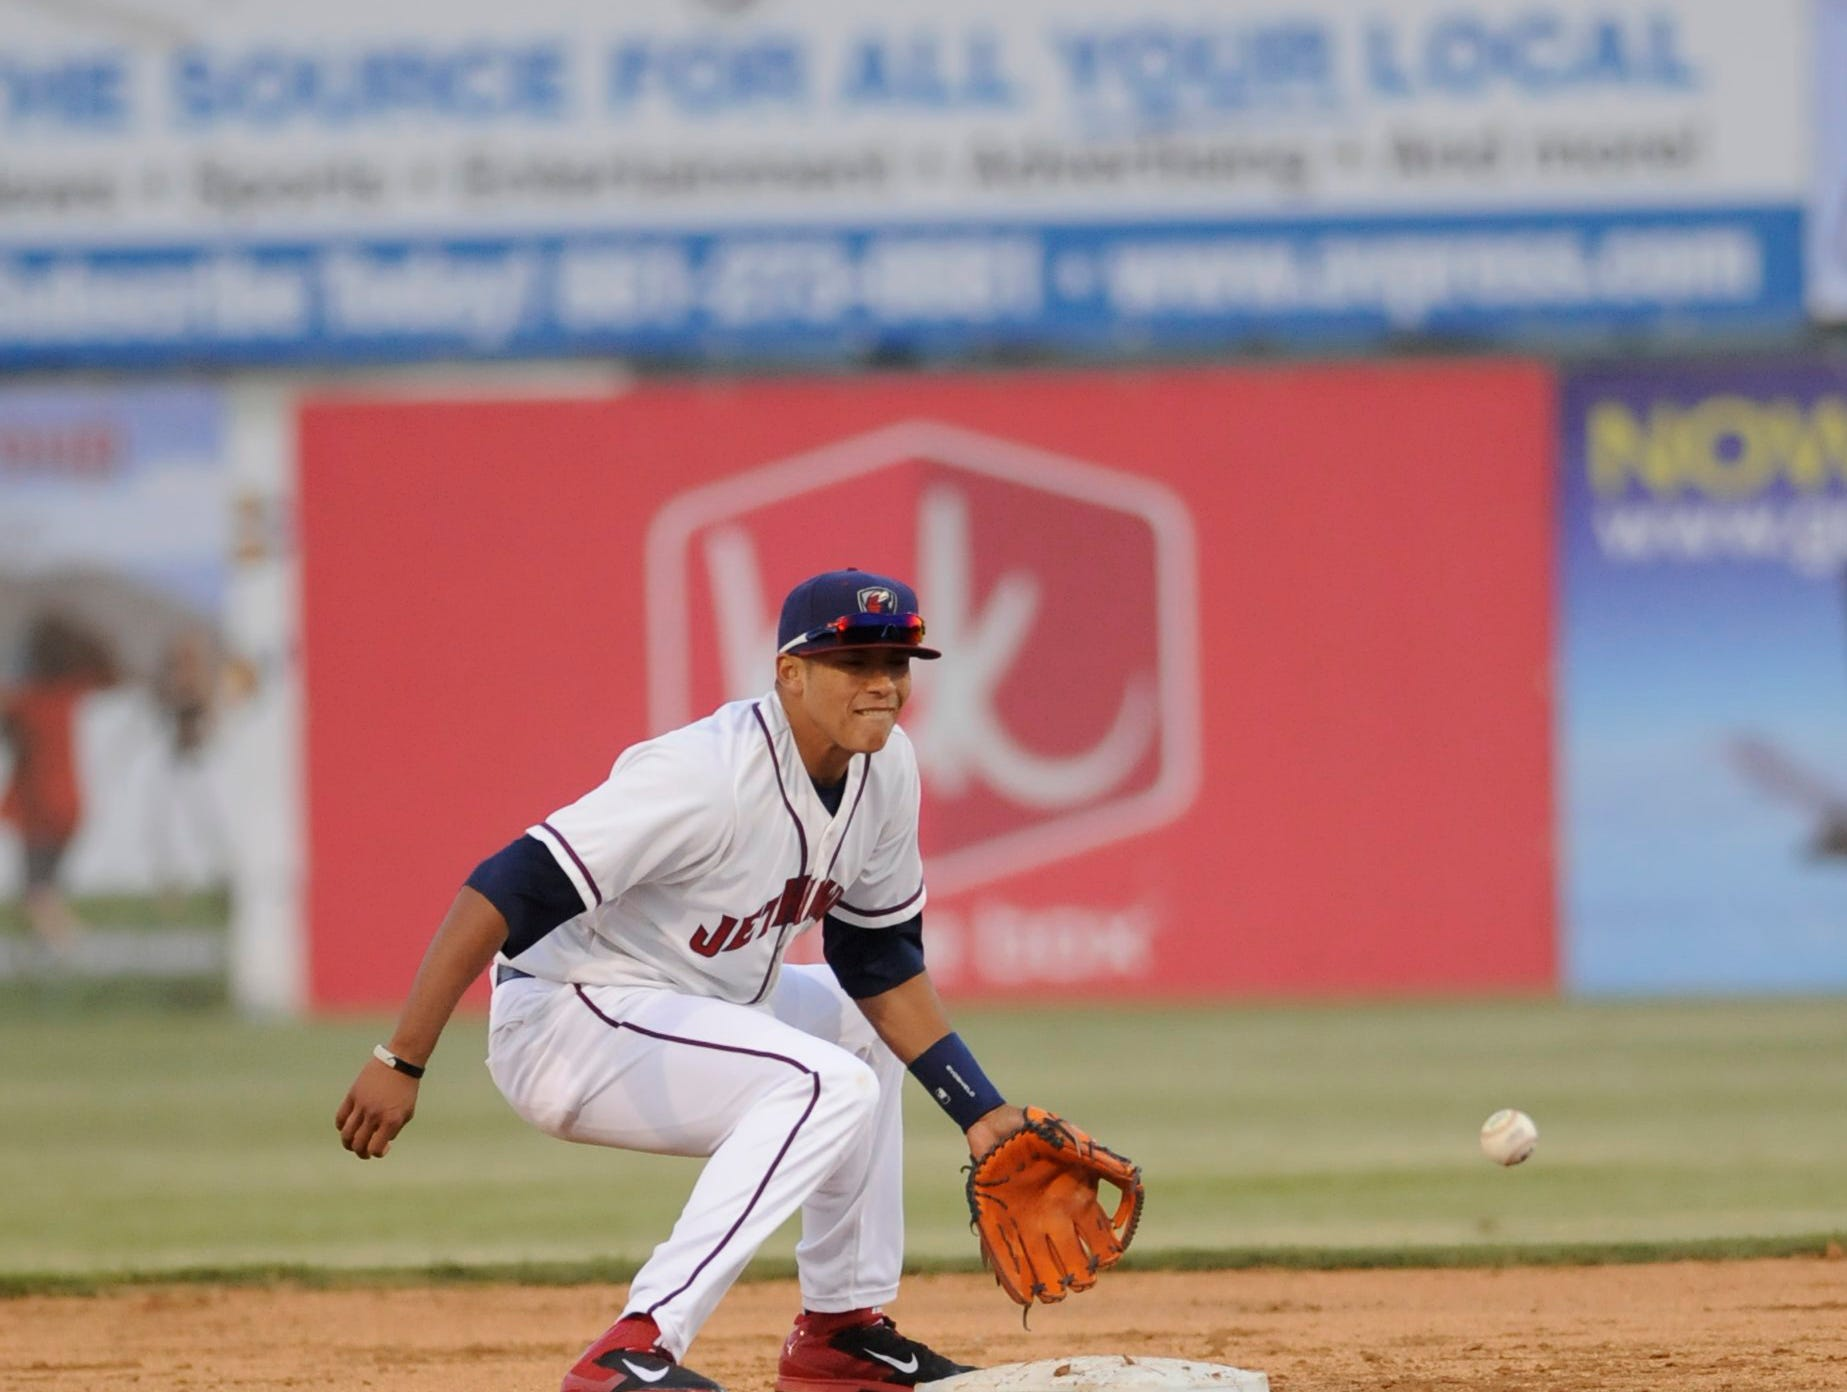 """In 2014, Houston Astros general manager Jeff Luhnow said there was """"zero question"""" about Carlos Correa's ability to play shortstop at a high level."""